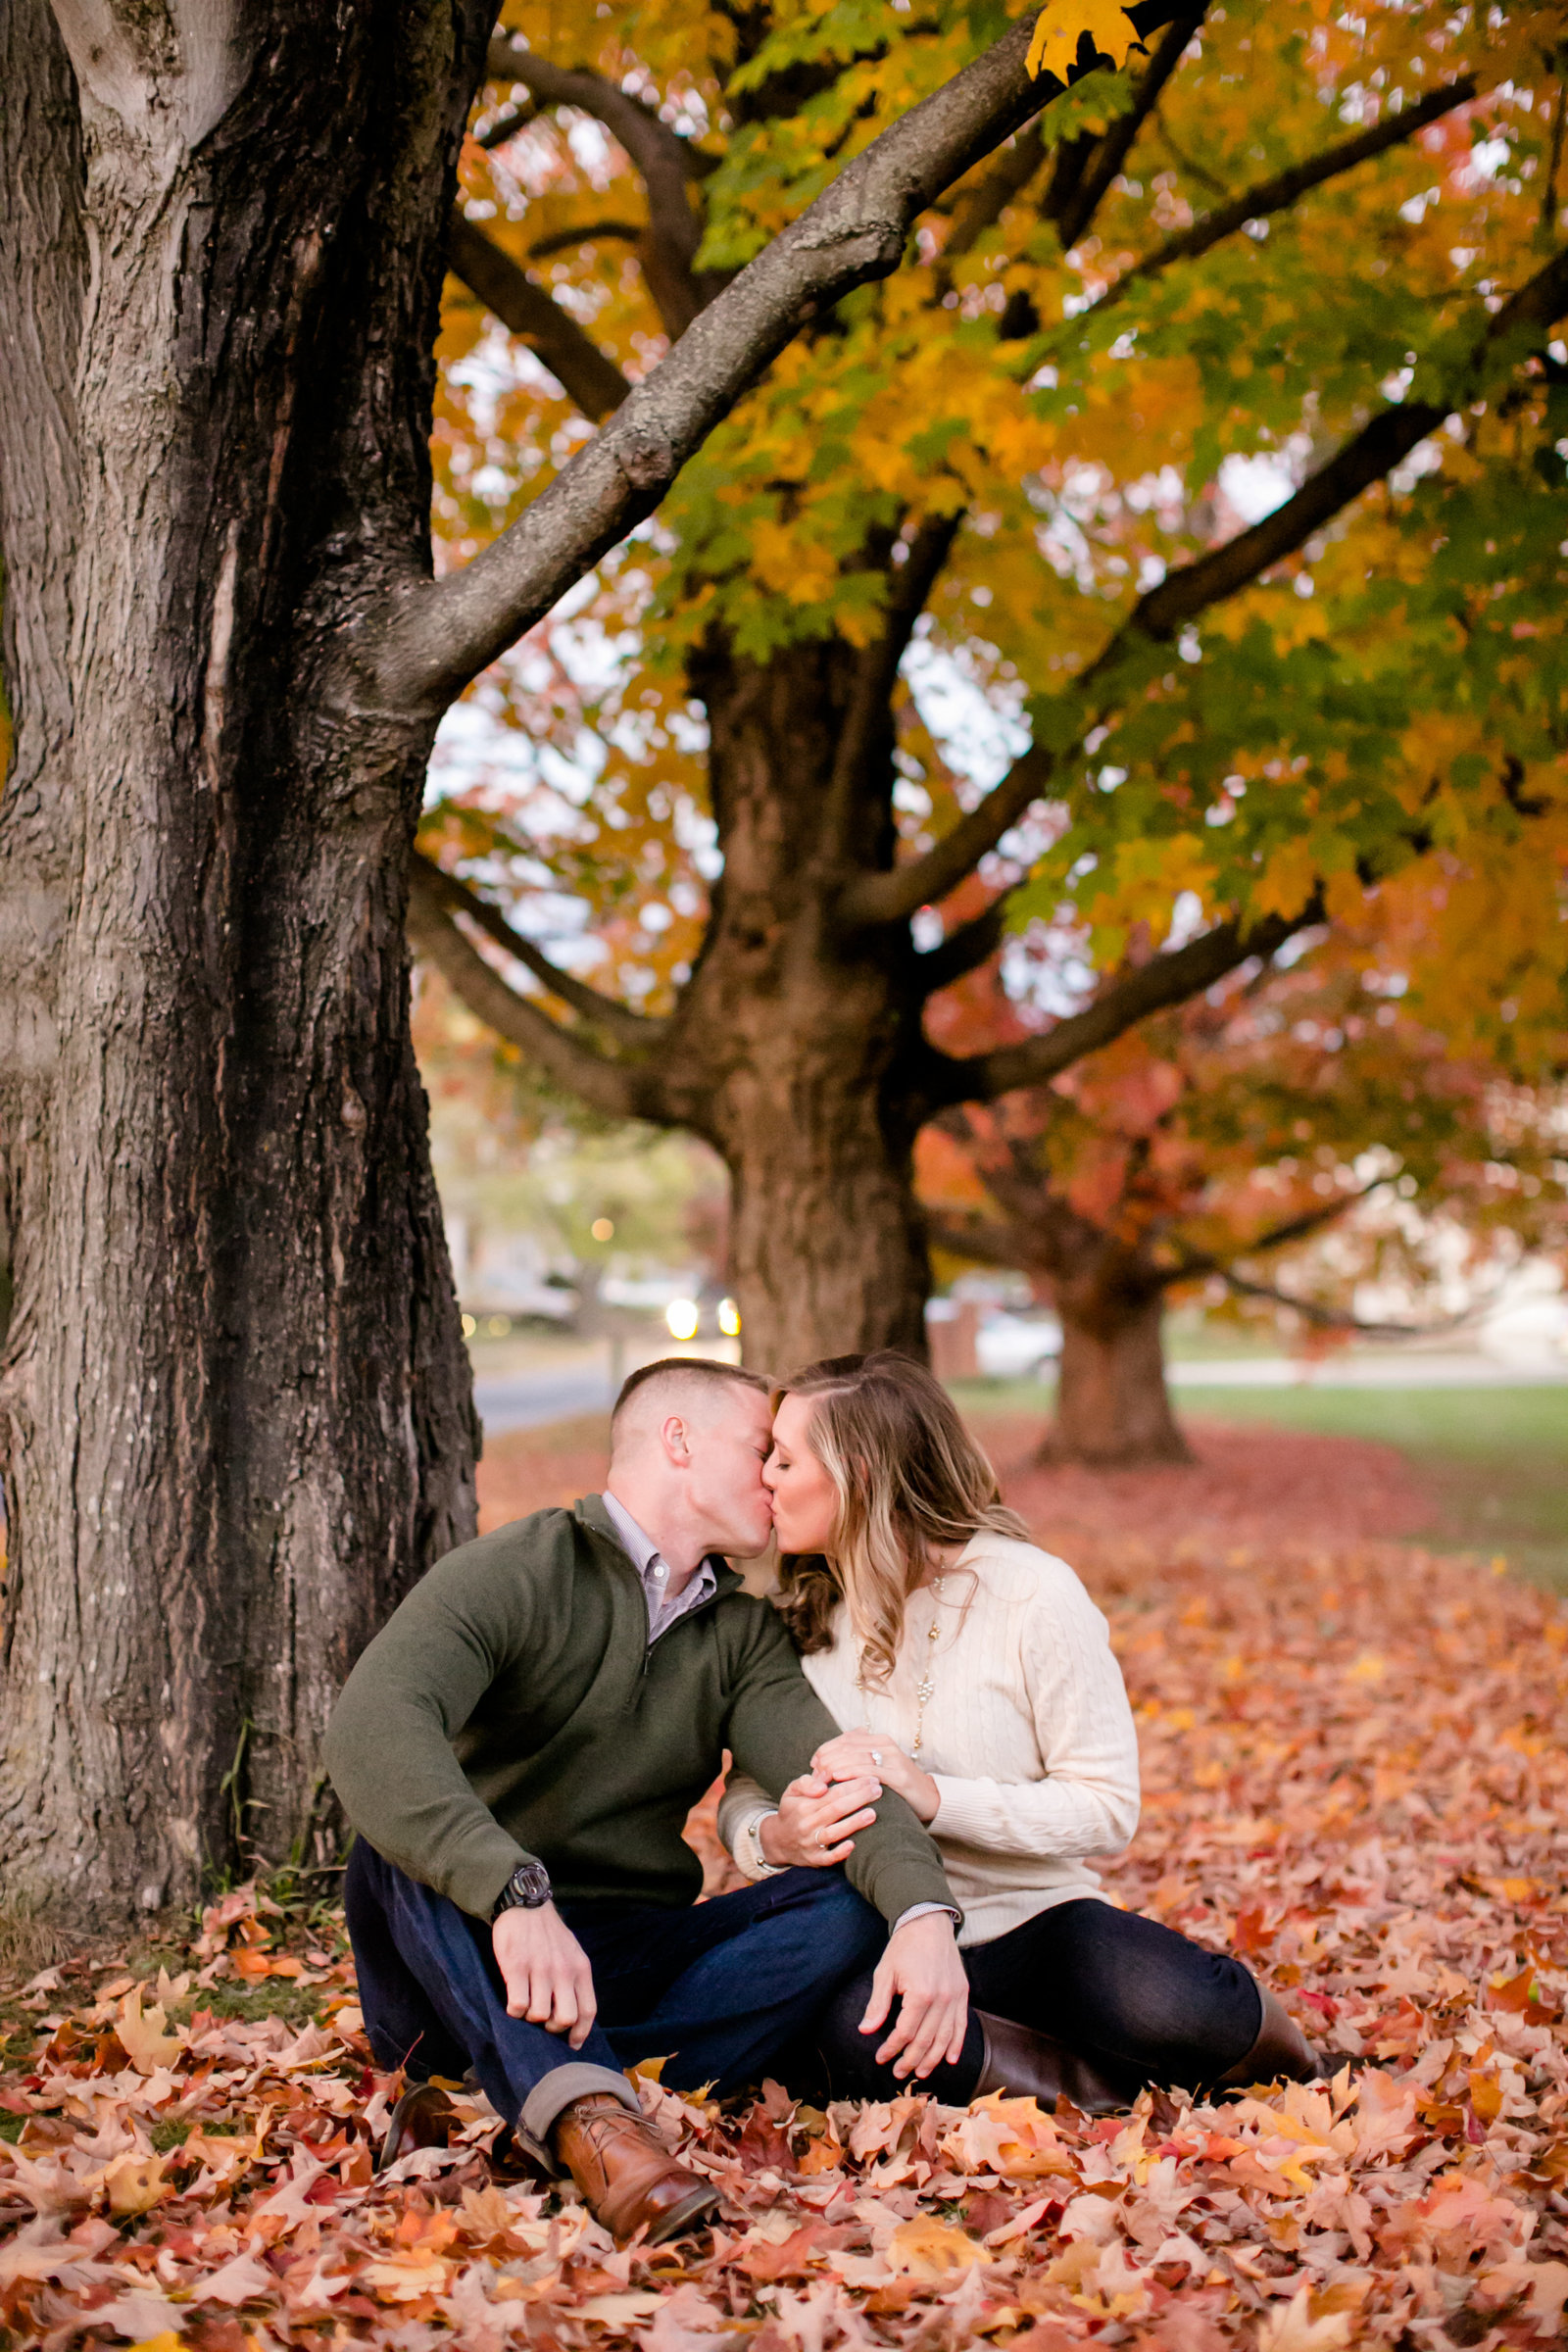 Carley Rehberg Photography - Engagement Photographer - Photo - 29